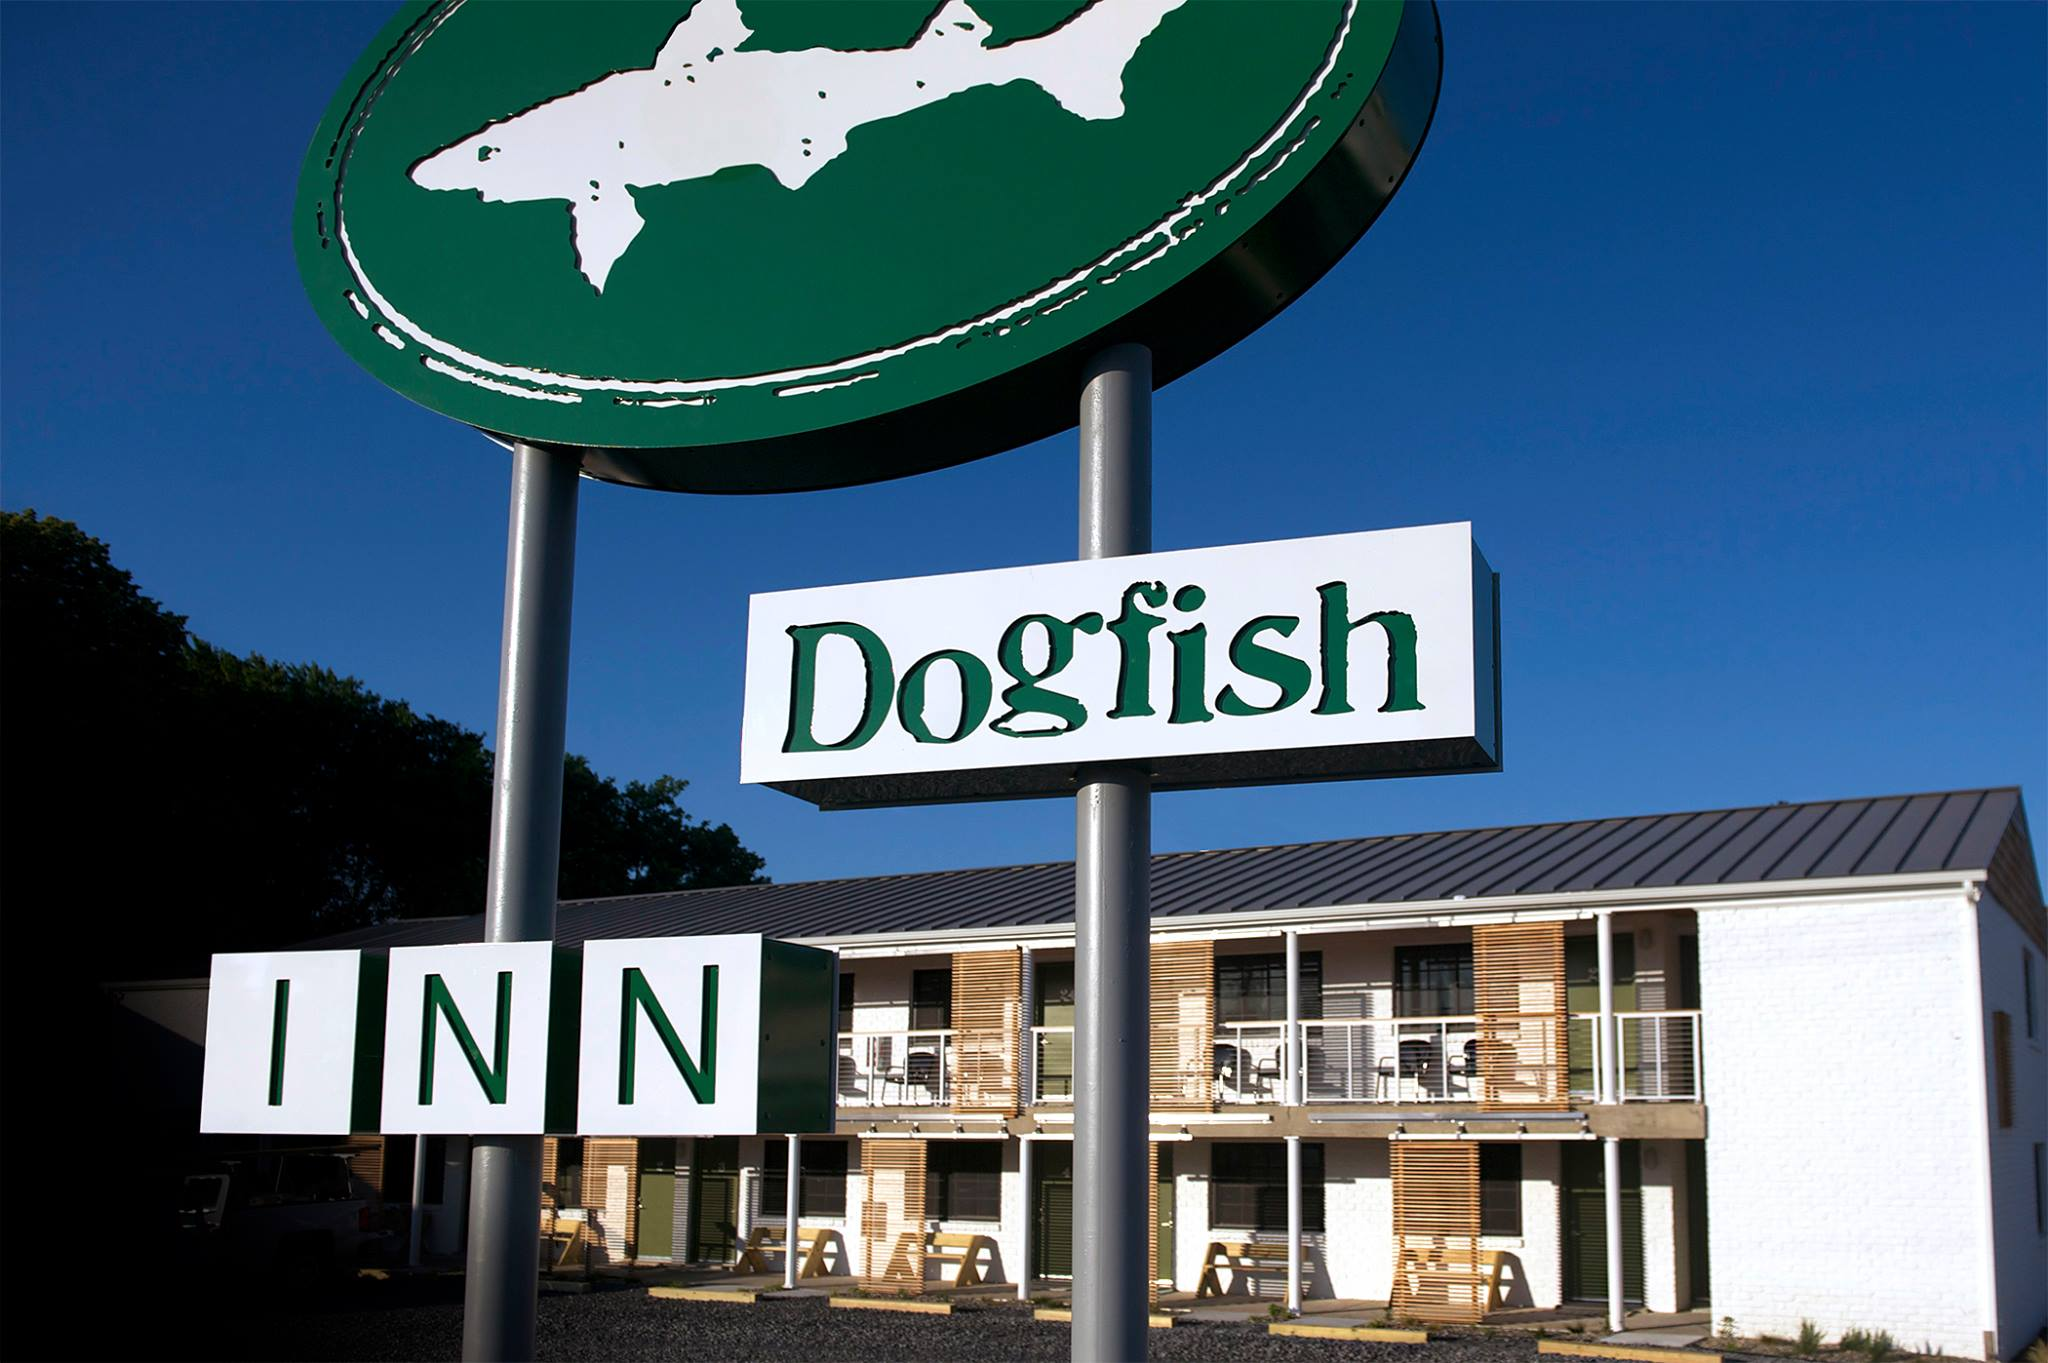 A sign on a pole in front of a building at Dogfish Inn.